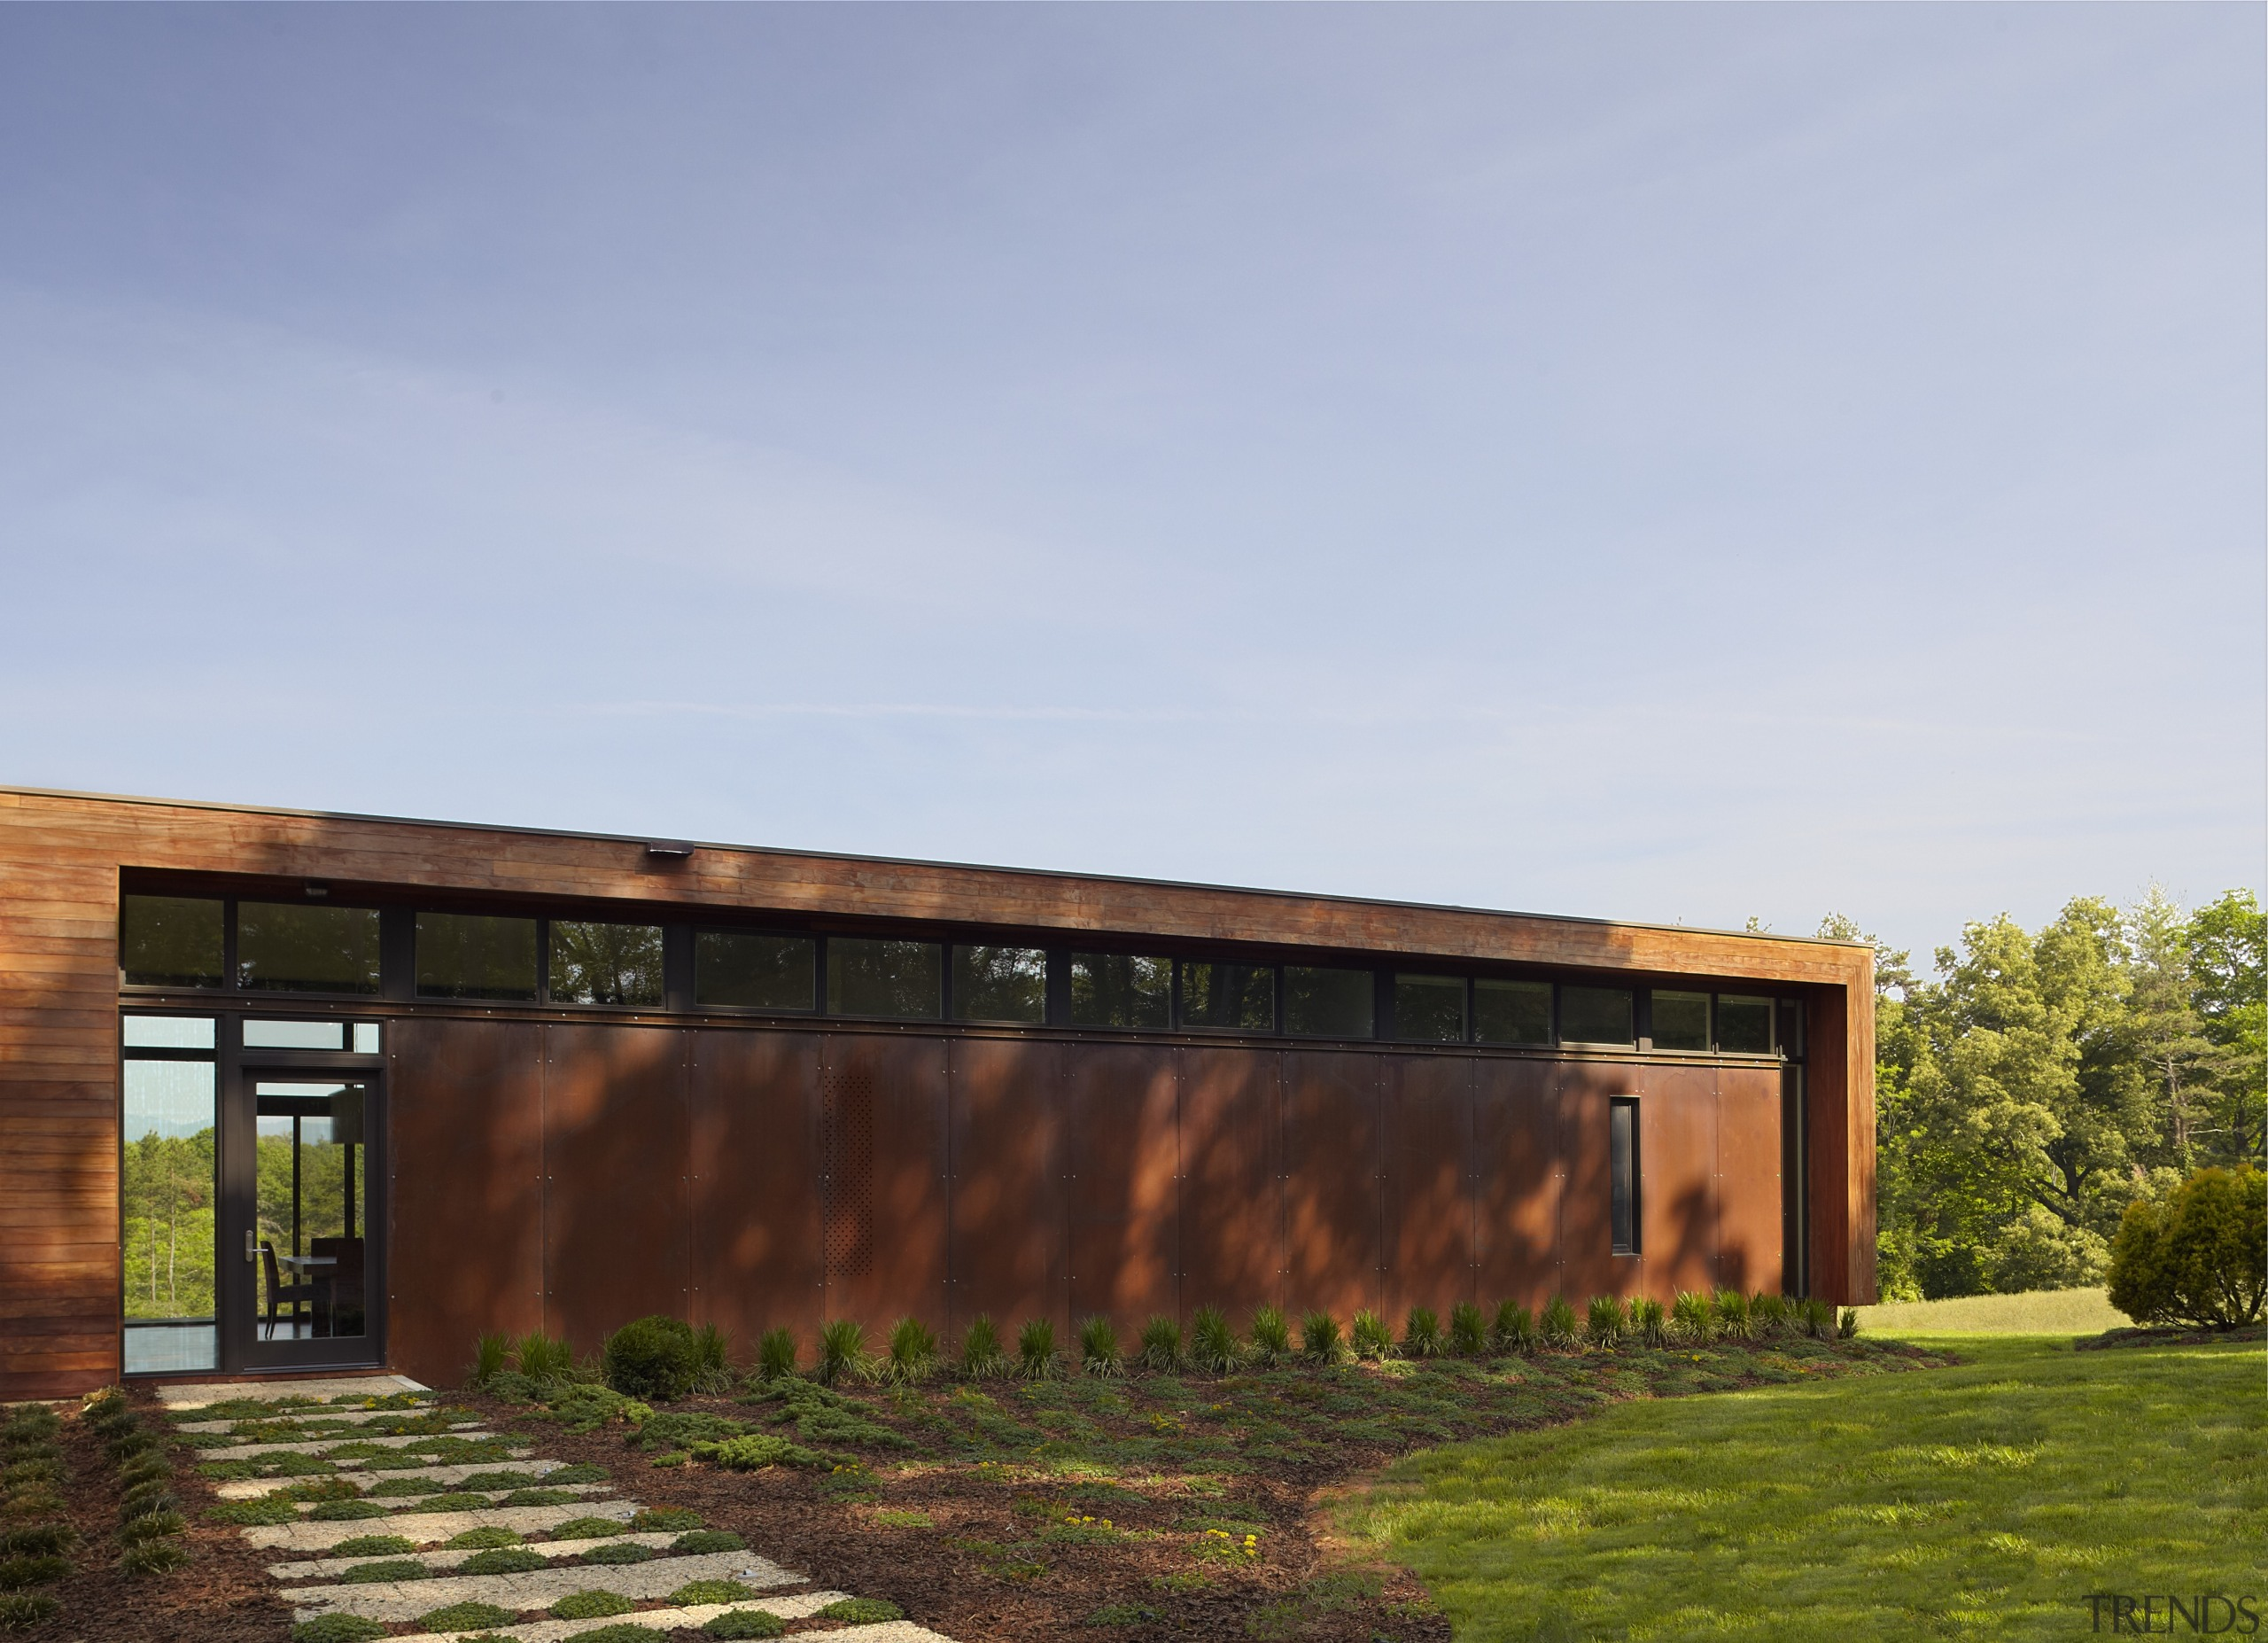 Exterior of house with rusted corten steel. Sustainable architecture, estate, facade, home, house, real estate, residential area, shed, sky, teal